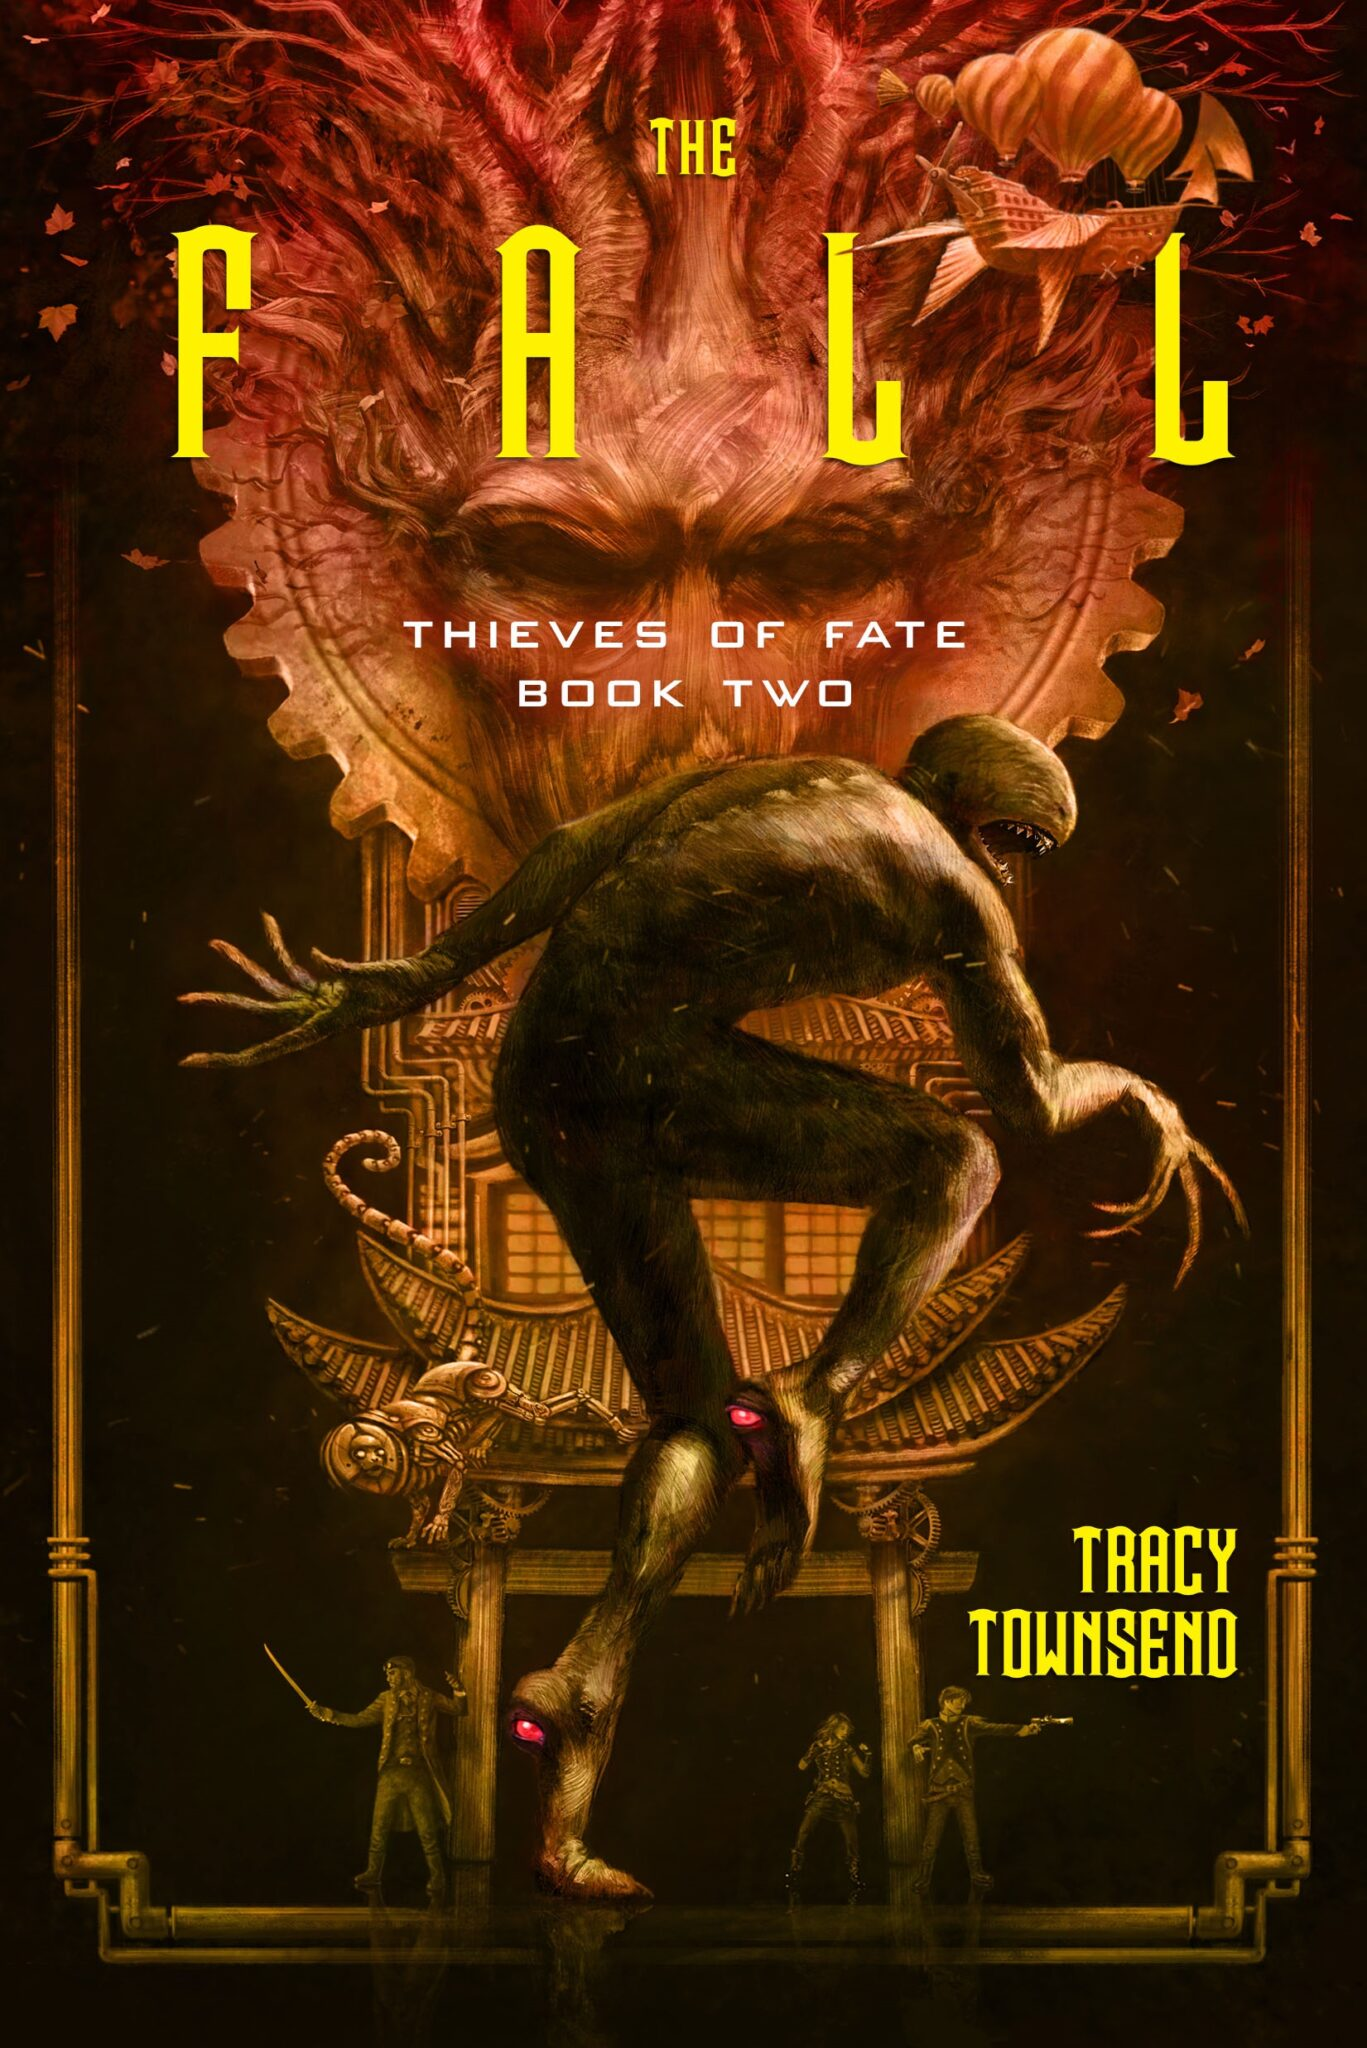 Tracy Townsend: In Pursuit Of The Sequel